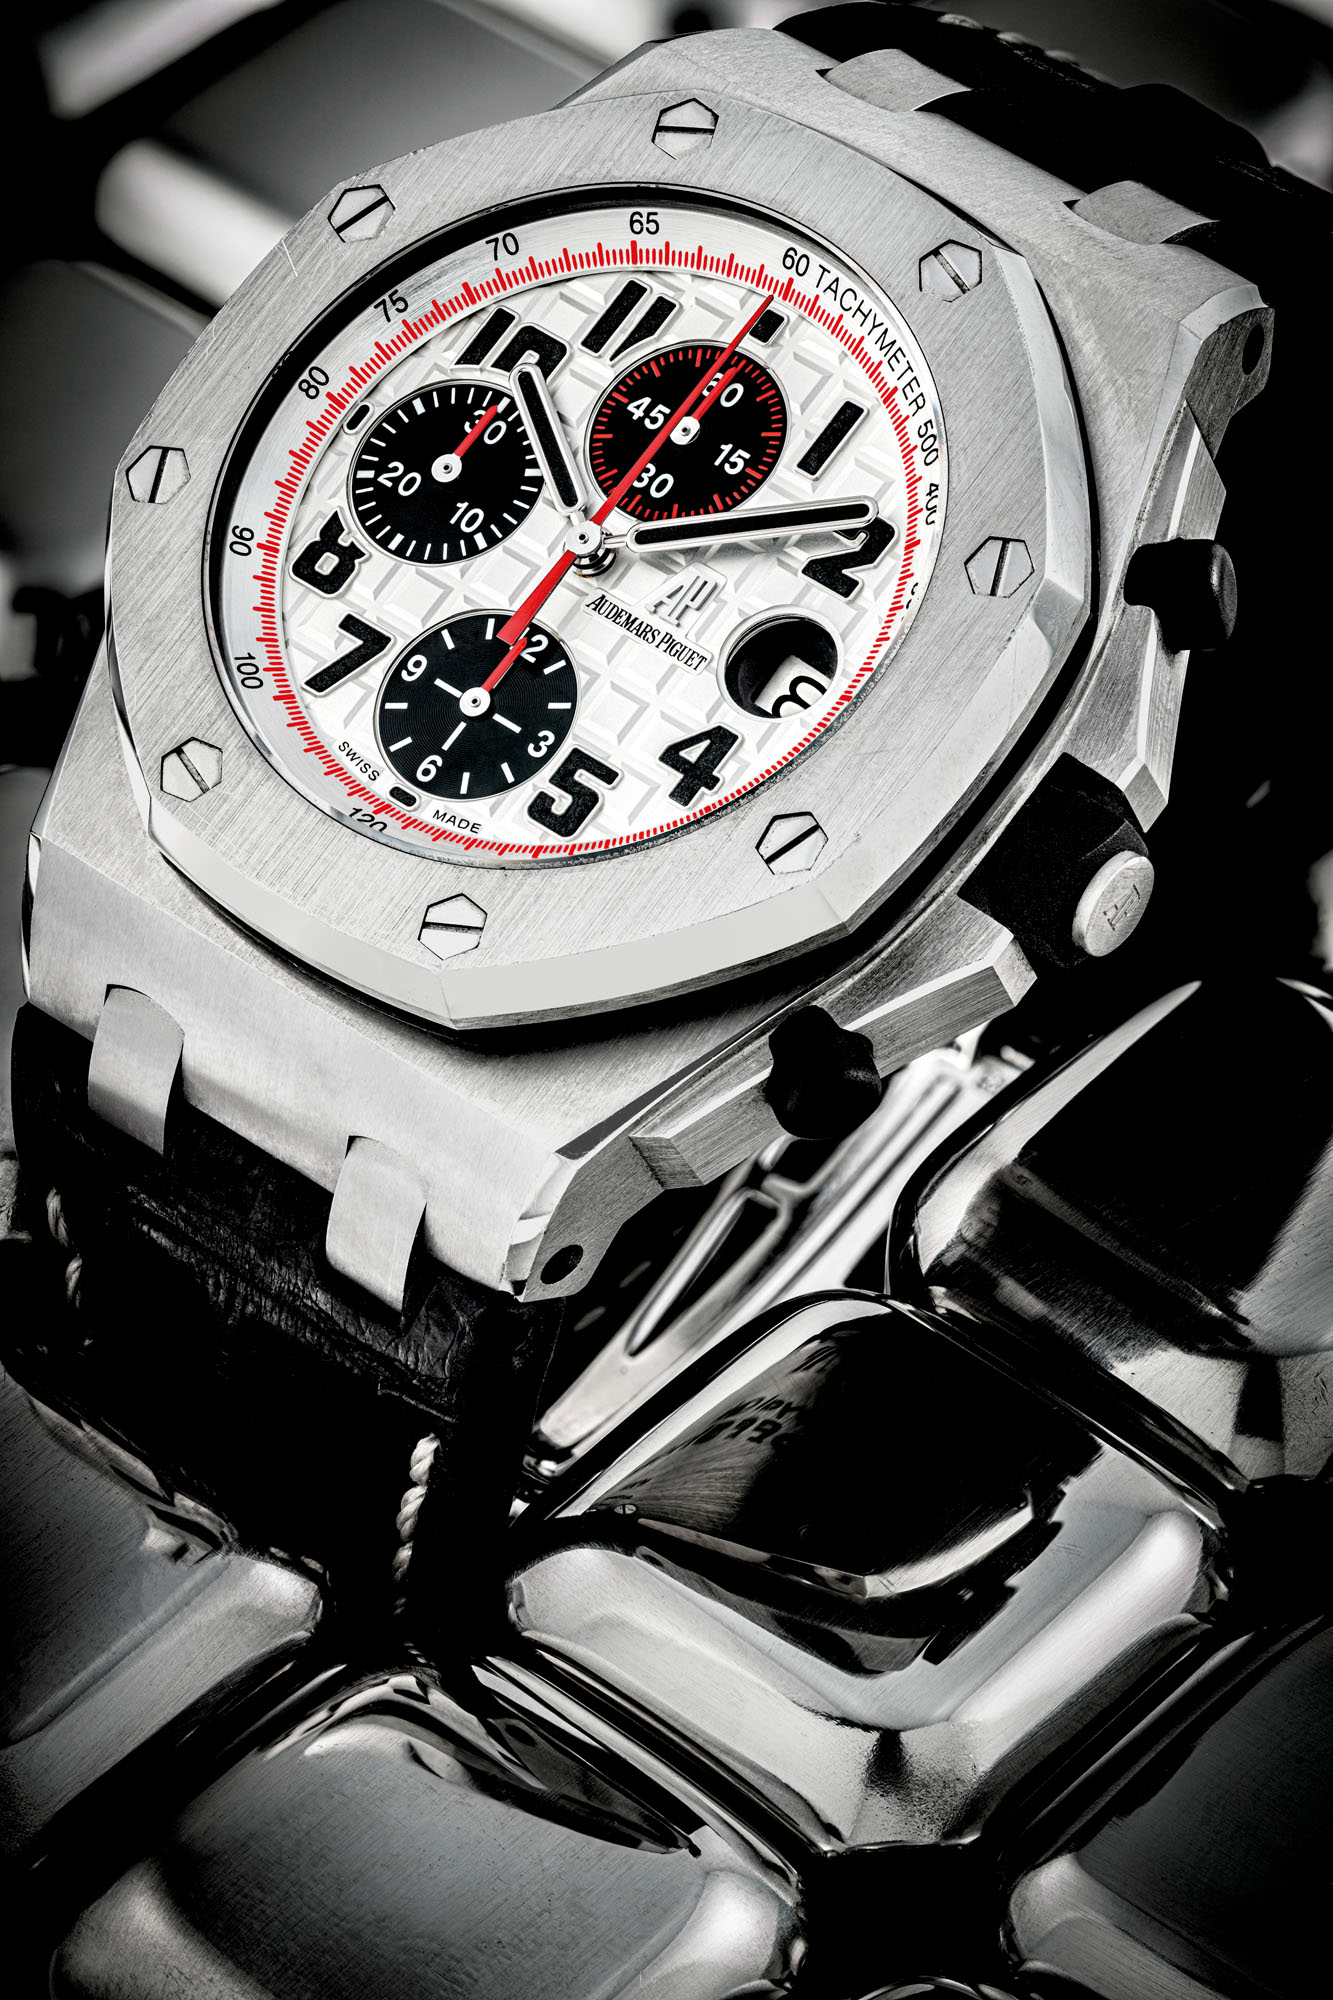 AUDEMARS PIGUET. A STAINLESS STEEL AUTOMATIC CHRONOGRAPH WRISTWATCH WITH DATE